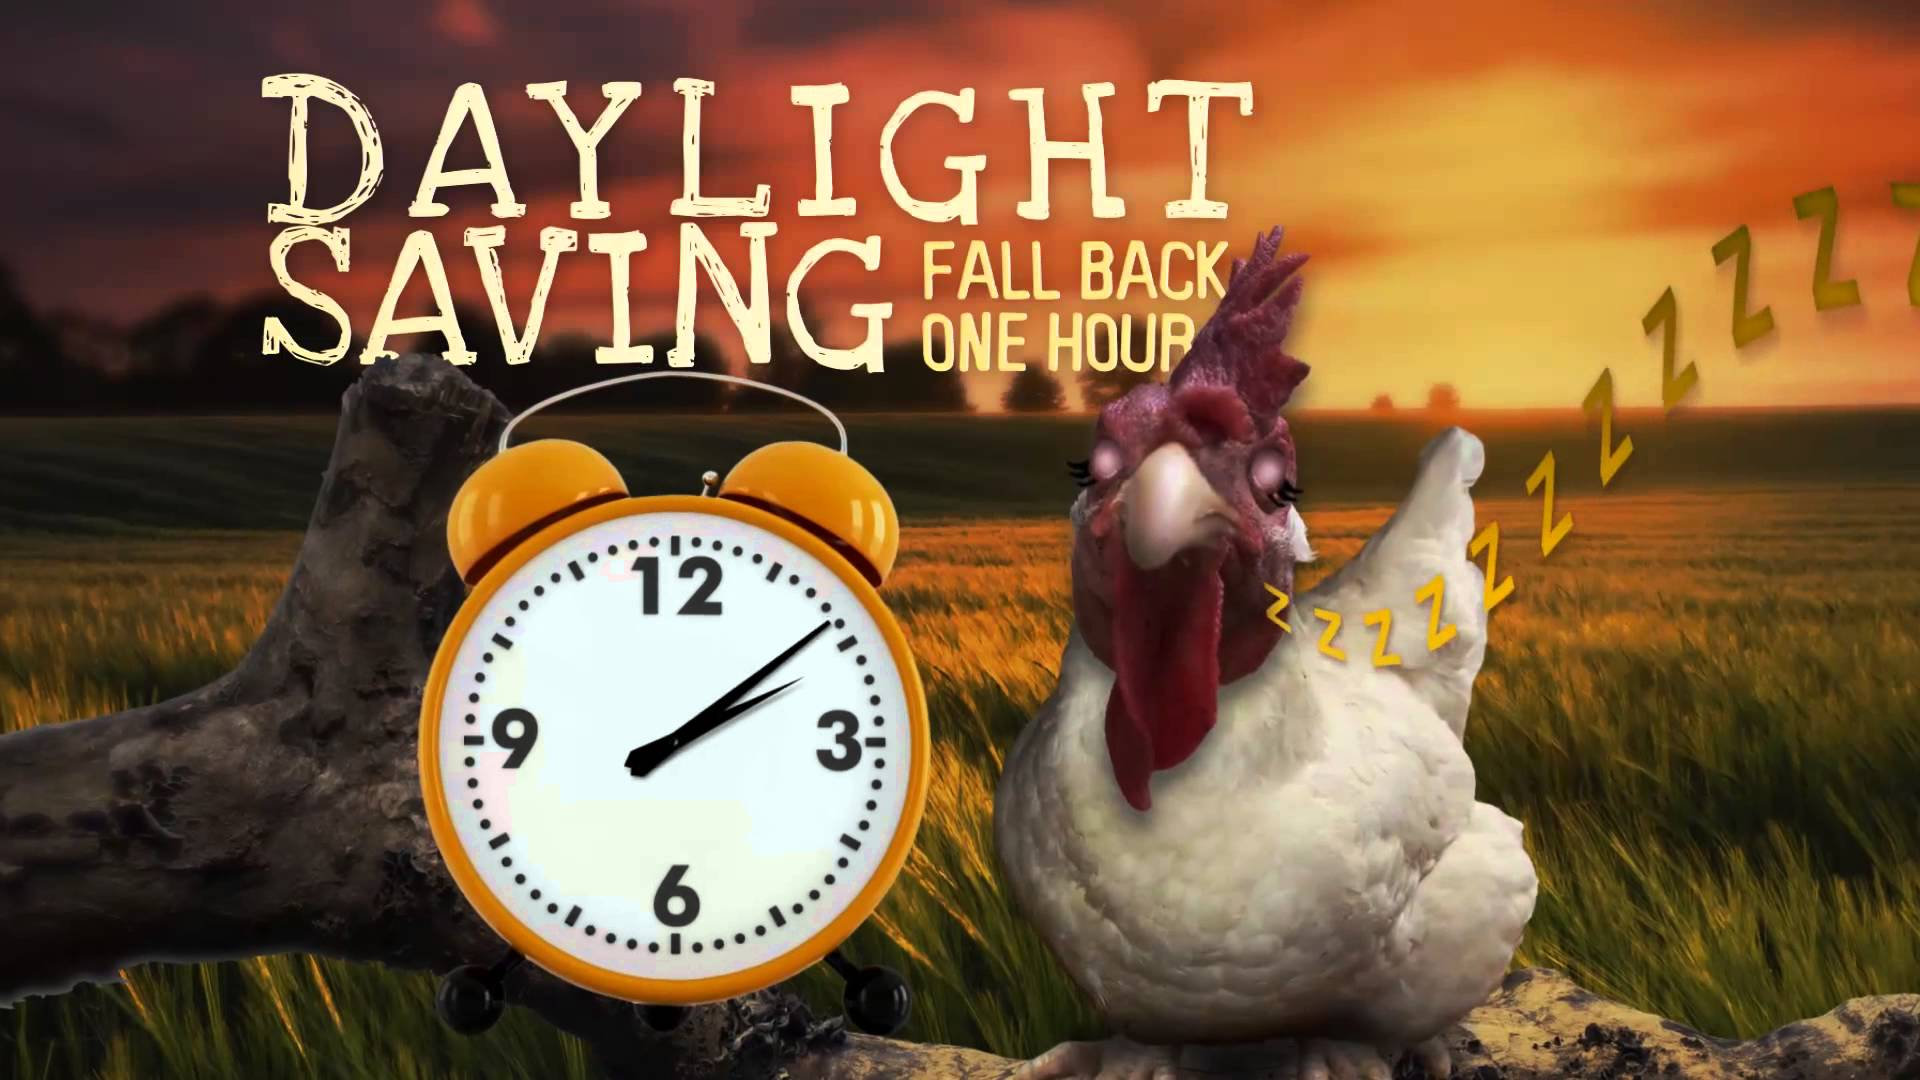 Daylight Saving Time End Will Add An Extra Hour To Your